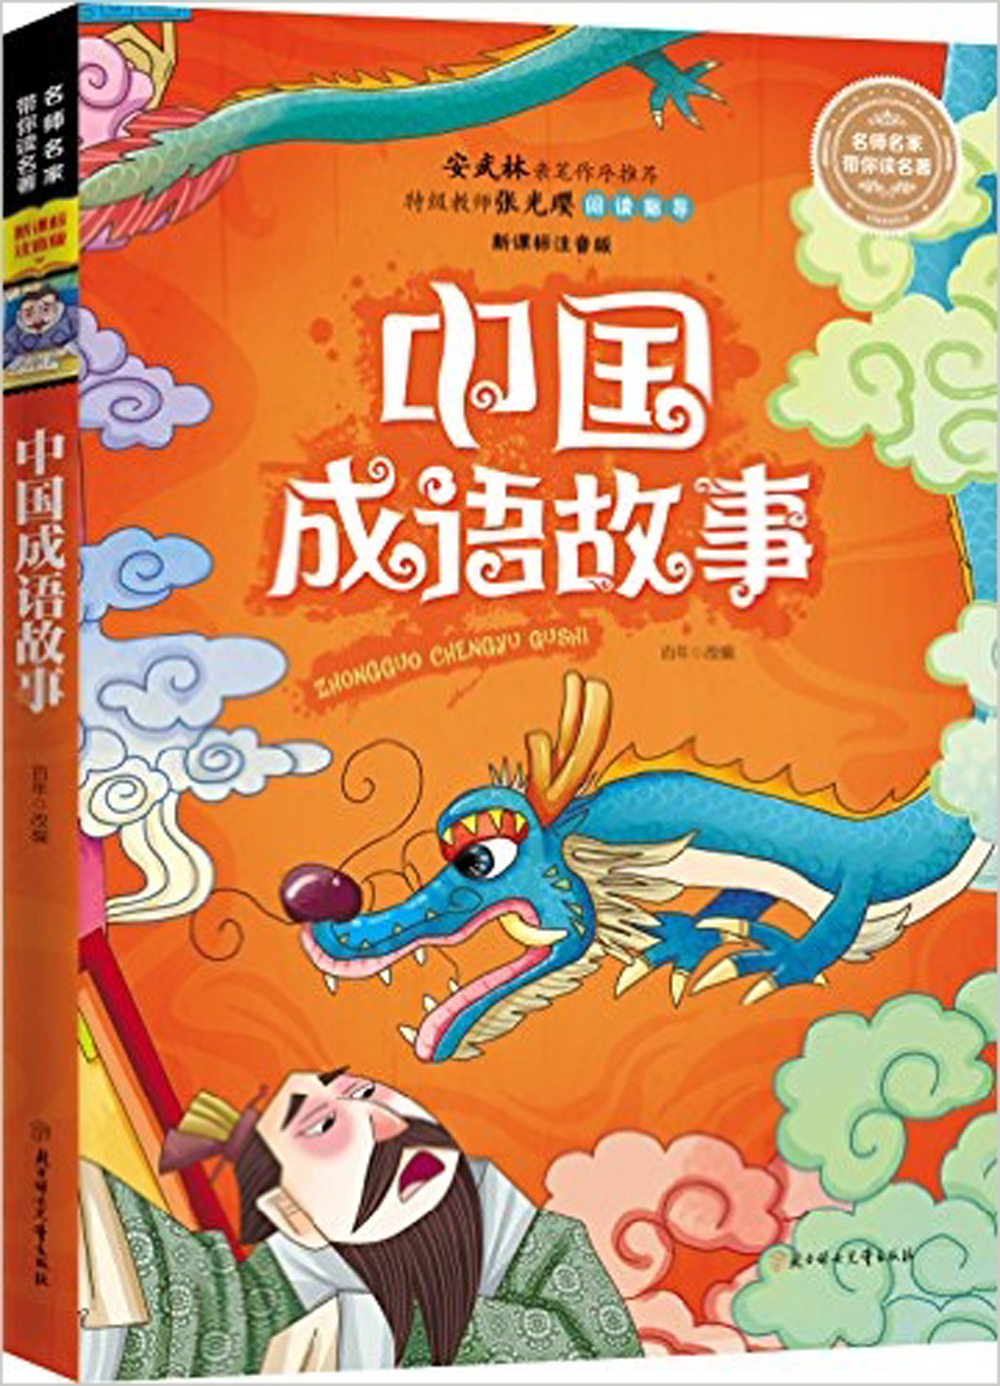 Chinese Idiom Stories Book Children 's Literature Reading Book With Pin Yin And Colorful Pictures / Kids Bedtime Story Book